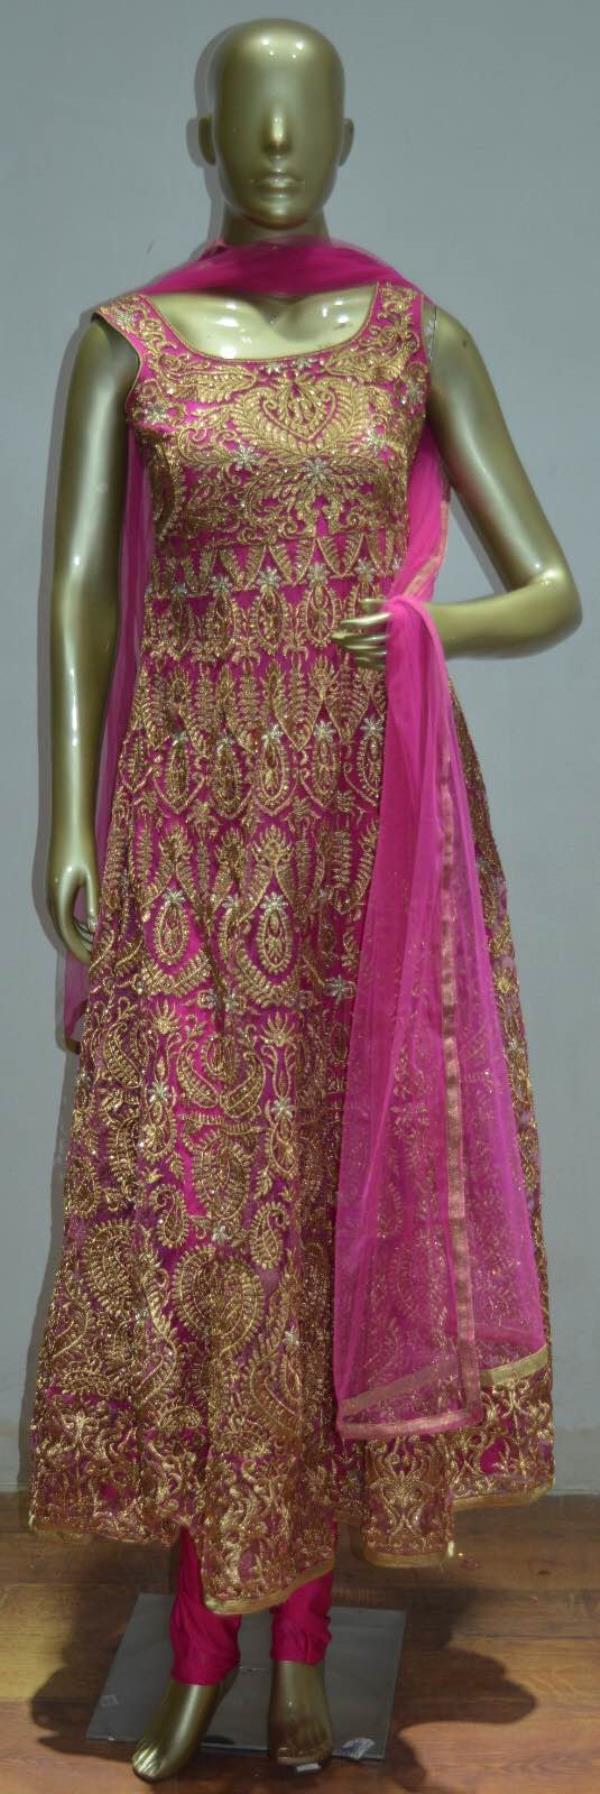 Salwar - by Surem's Creations, Chennai